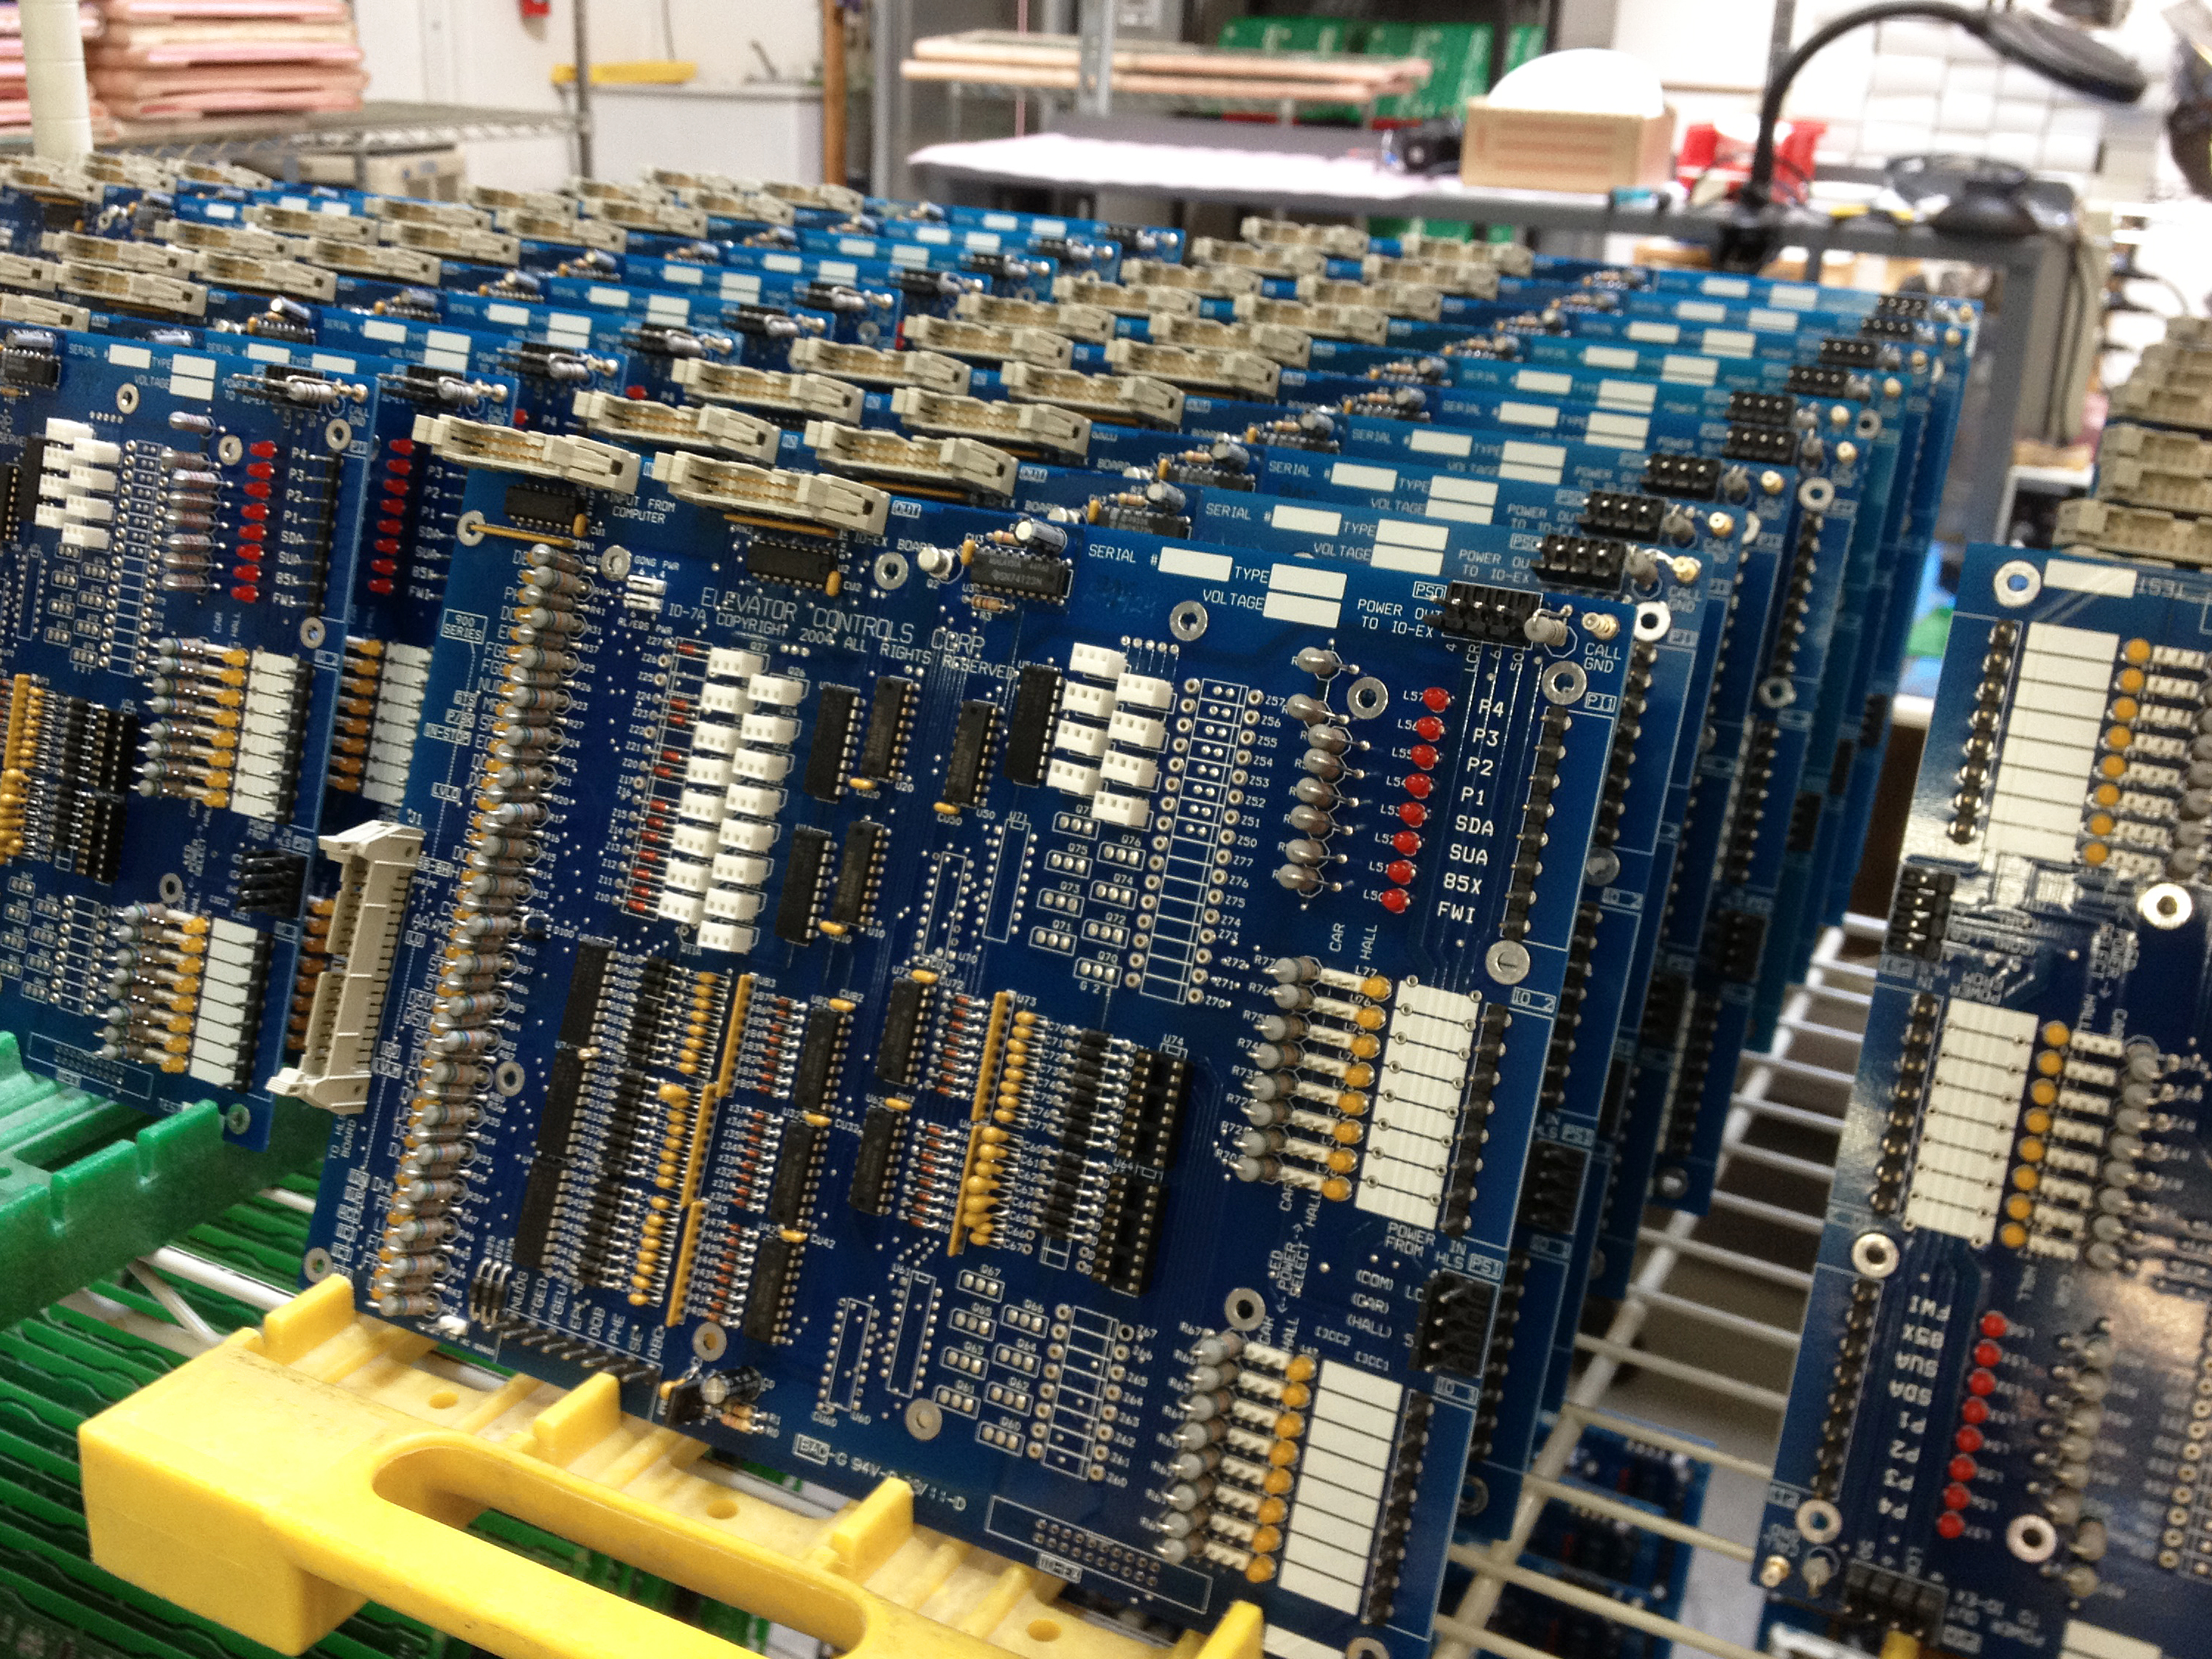 Unitron Pcb Manufacturing Printedcircuitboardassemblylargejpg Gallery